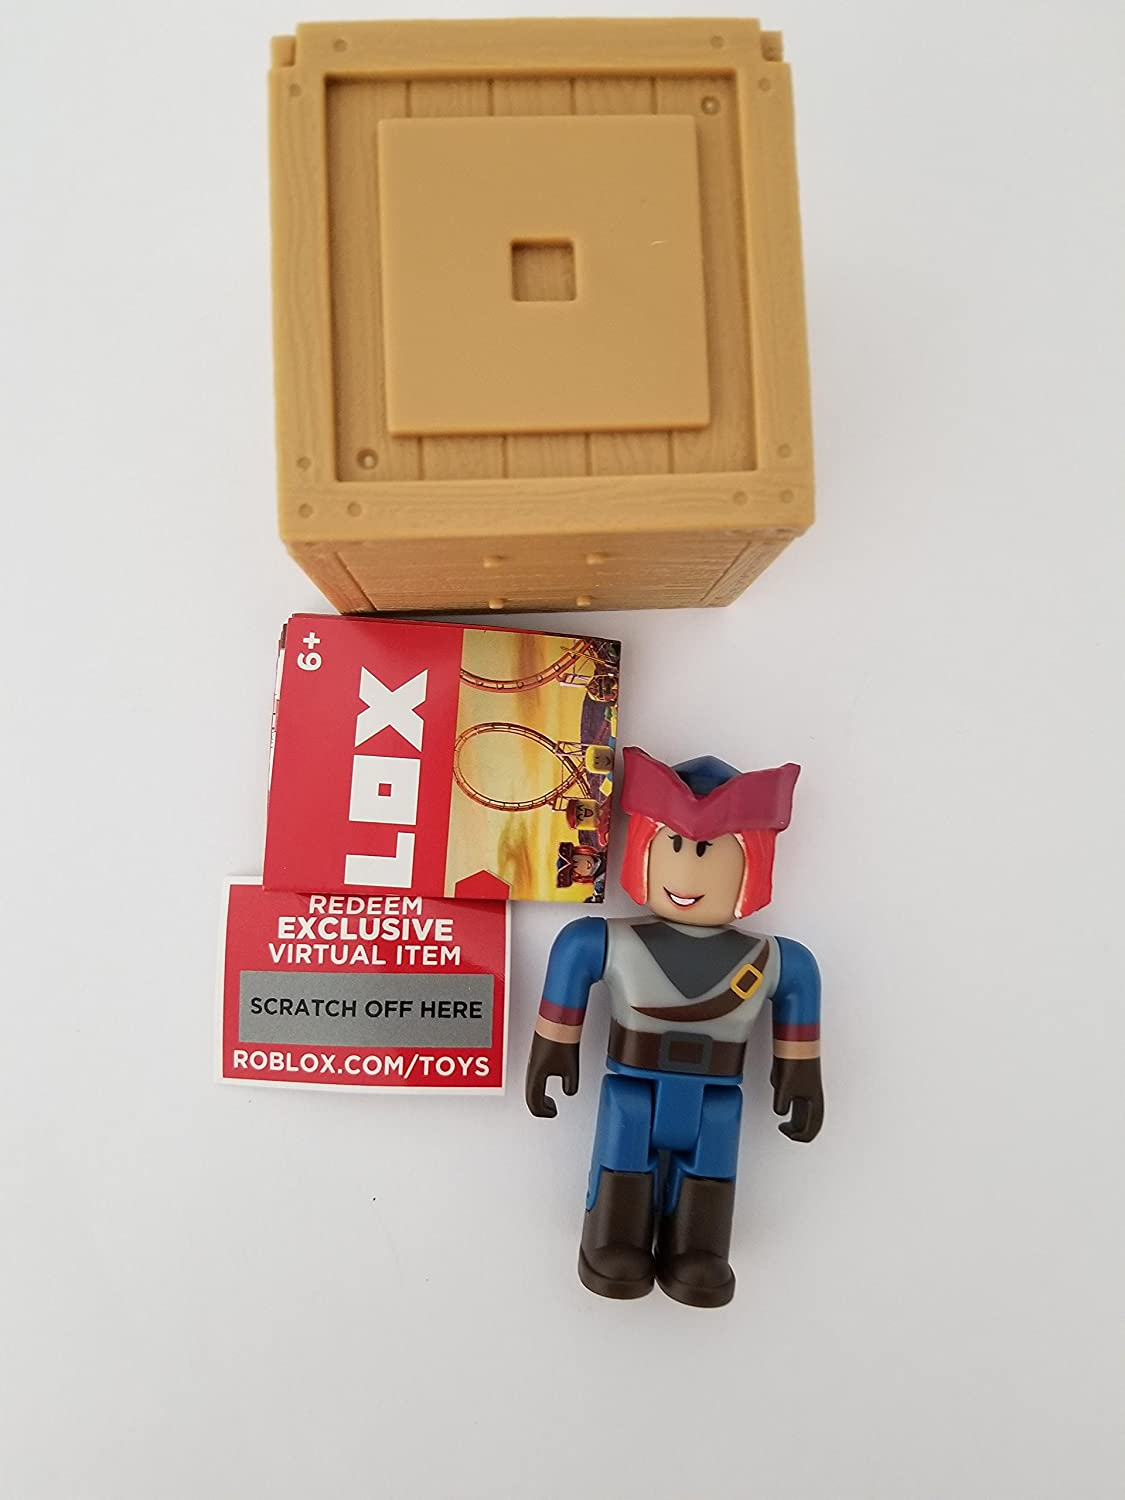 Roblox Figurines And Accessories With Free Redeemable Exclusive Virtual Item